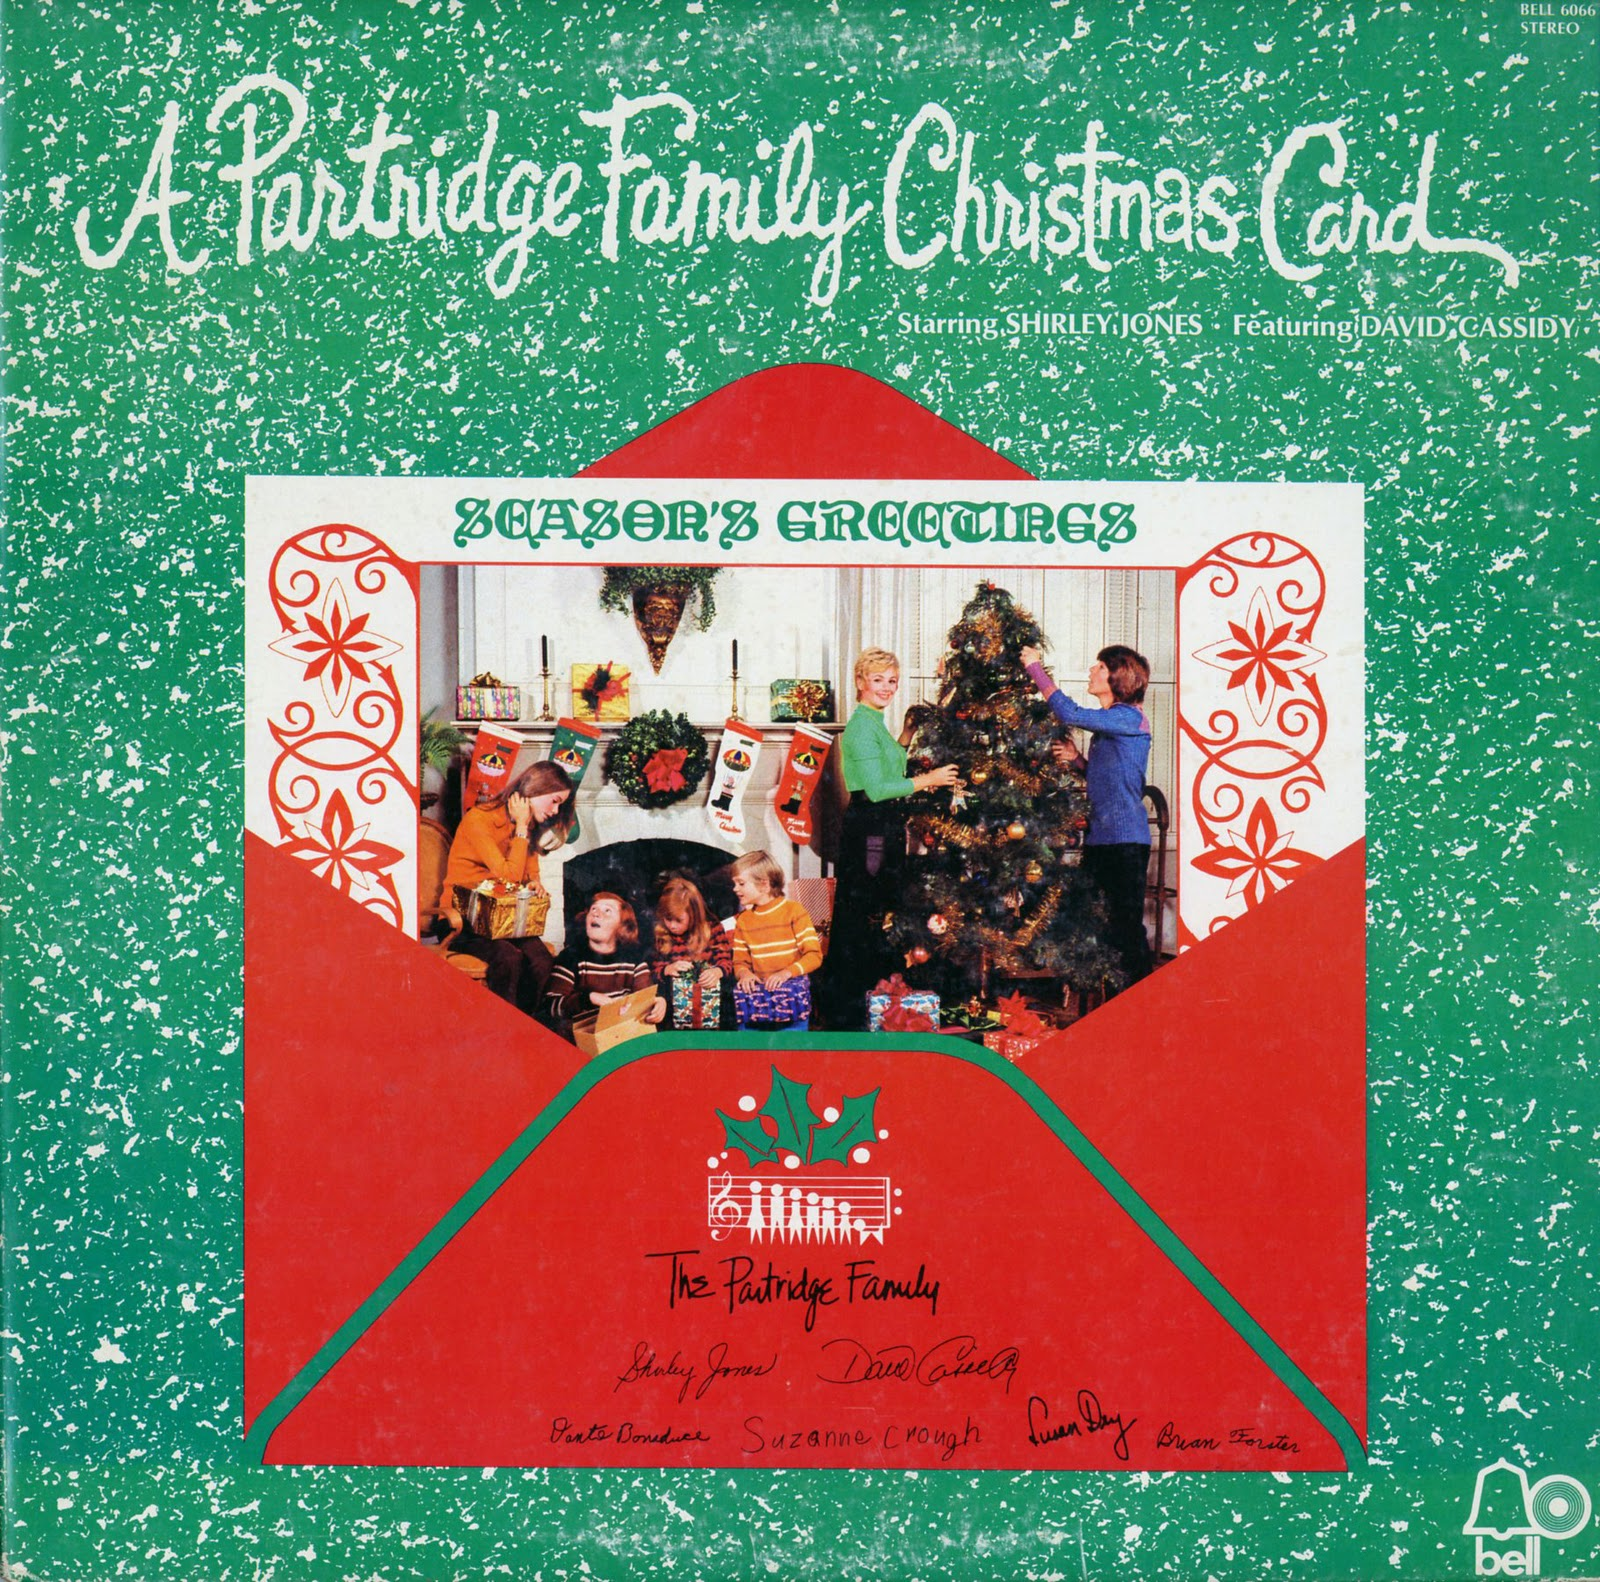 Unforgettable Christmas Music: Billboard's Top-Selling Christmas Album - 1970s